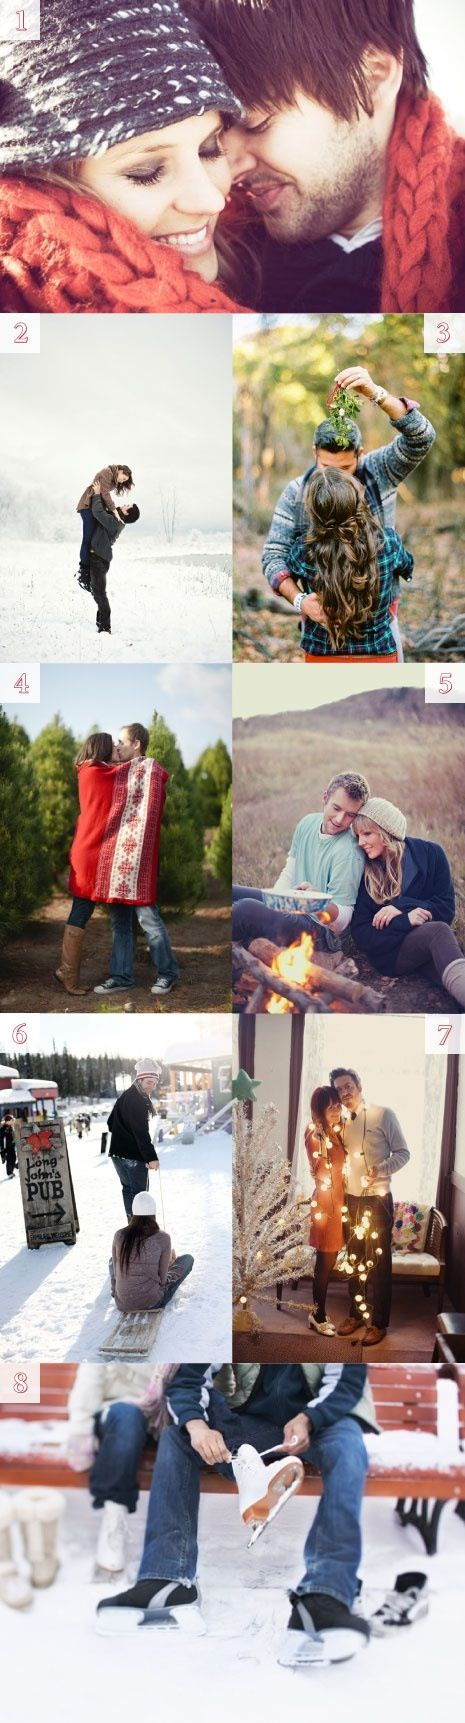 Winter engagement….i want to get engaged in winter soo bad!